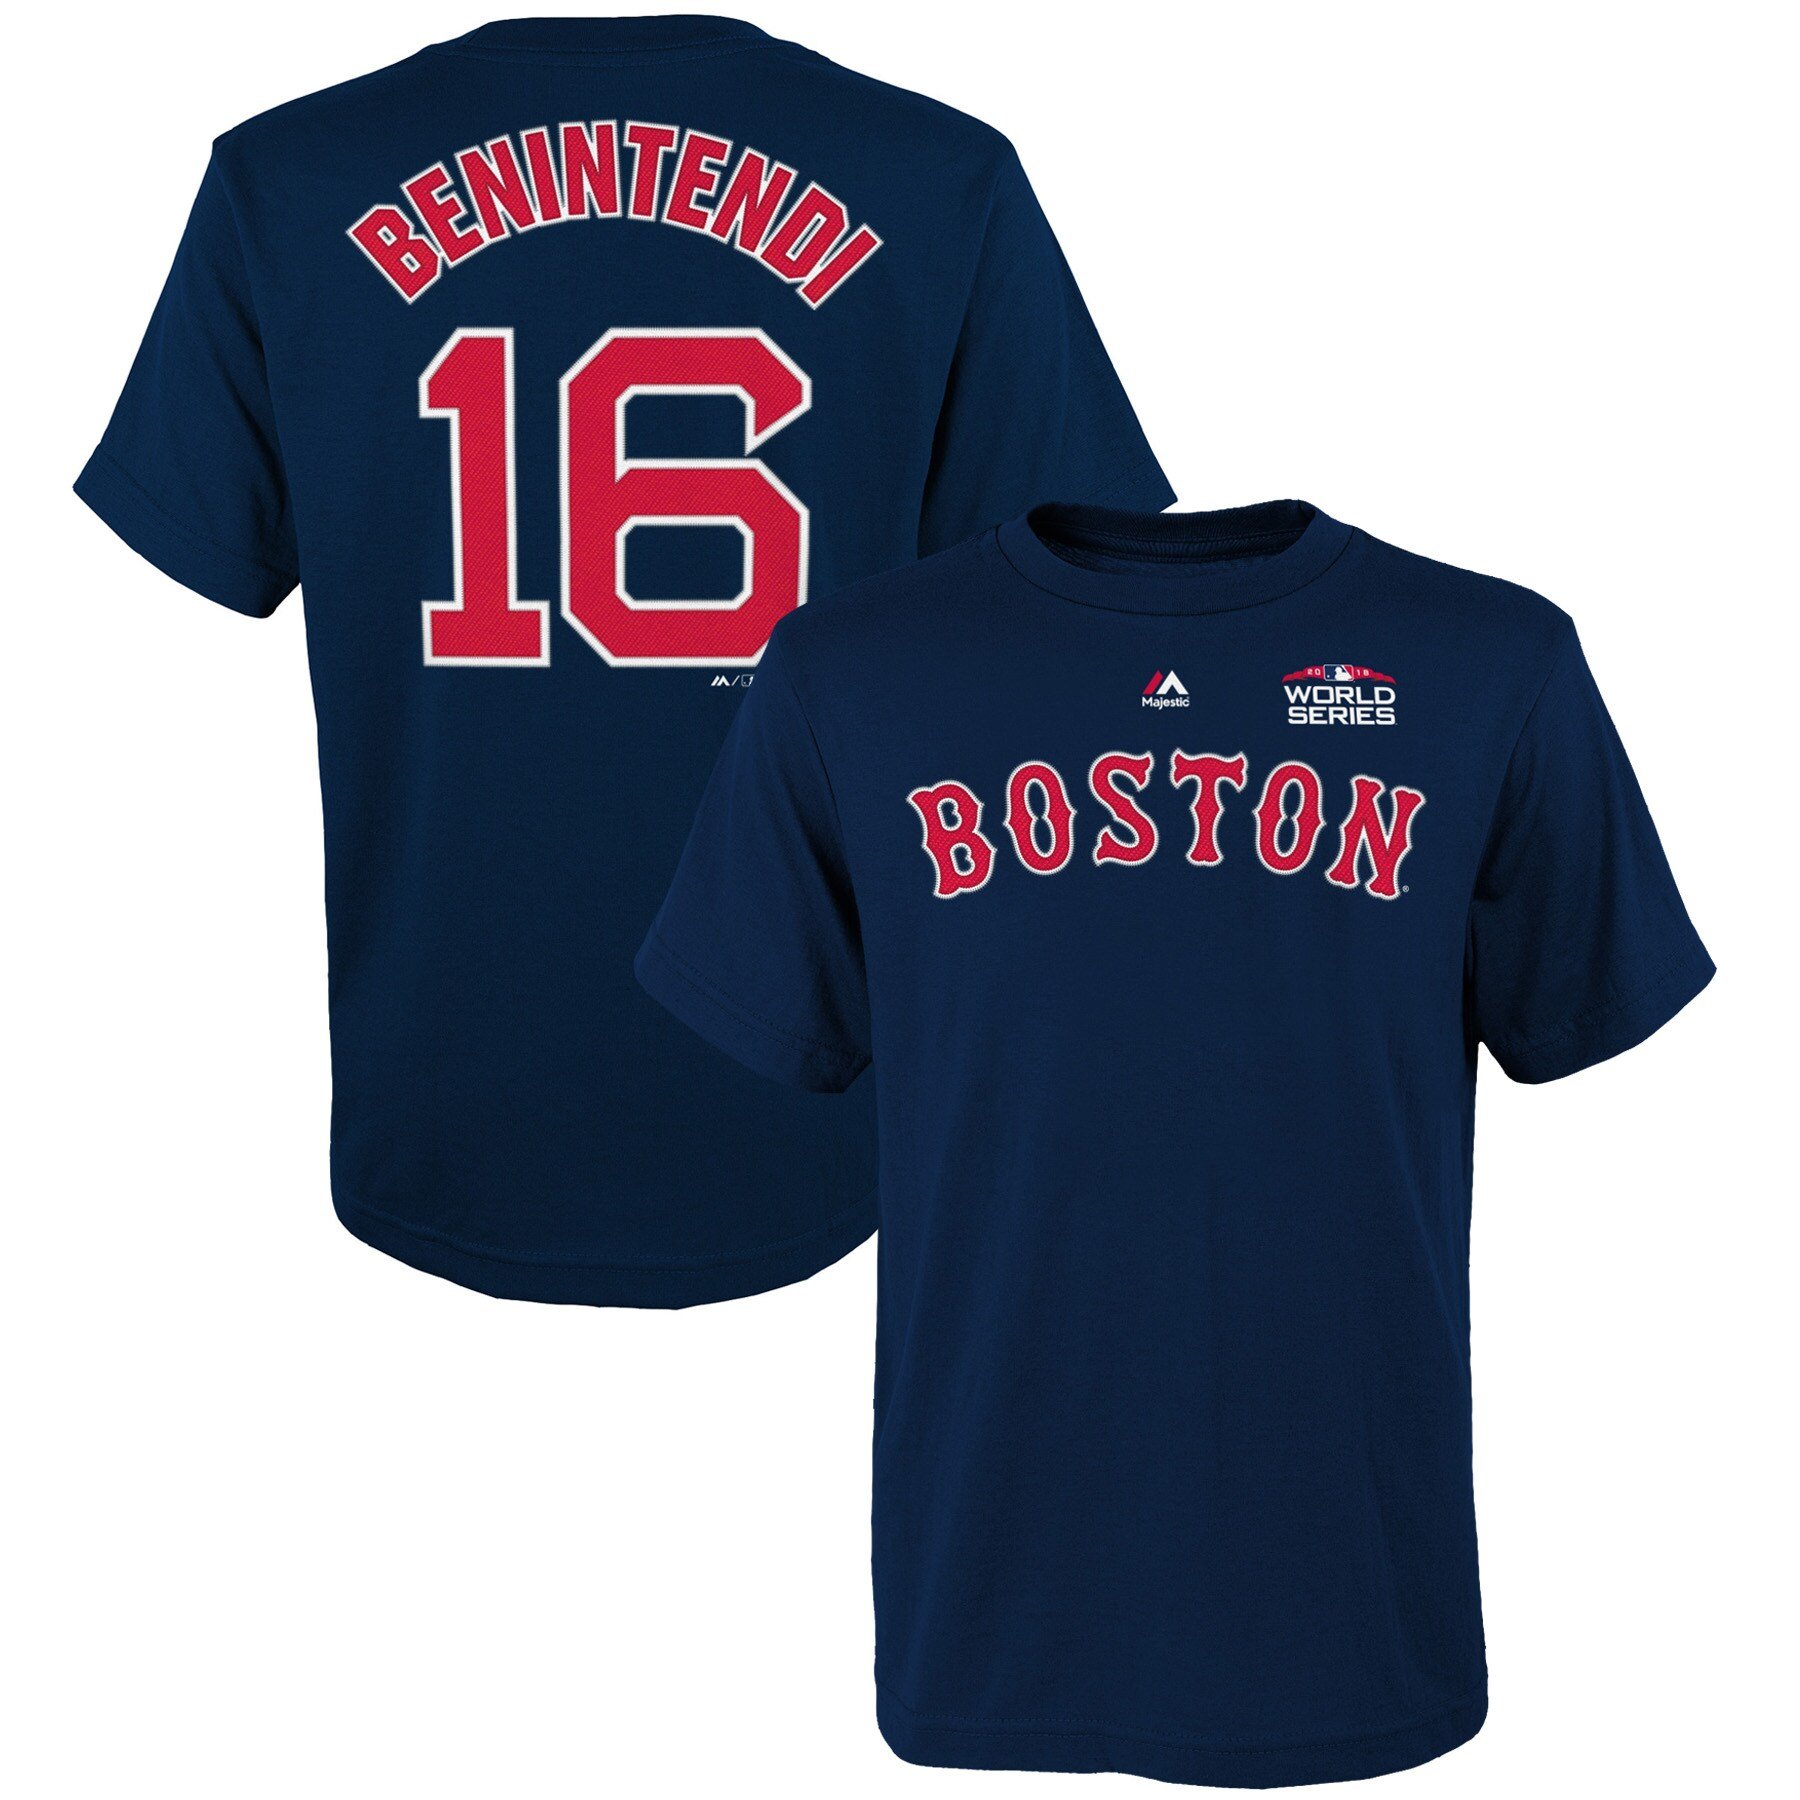 Andrew Benintendi Boston Red Sox Youth 2018 World Series Name & Number T-Shirt - Navy